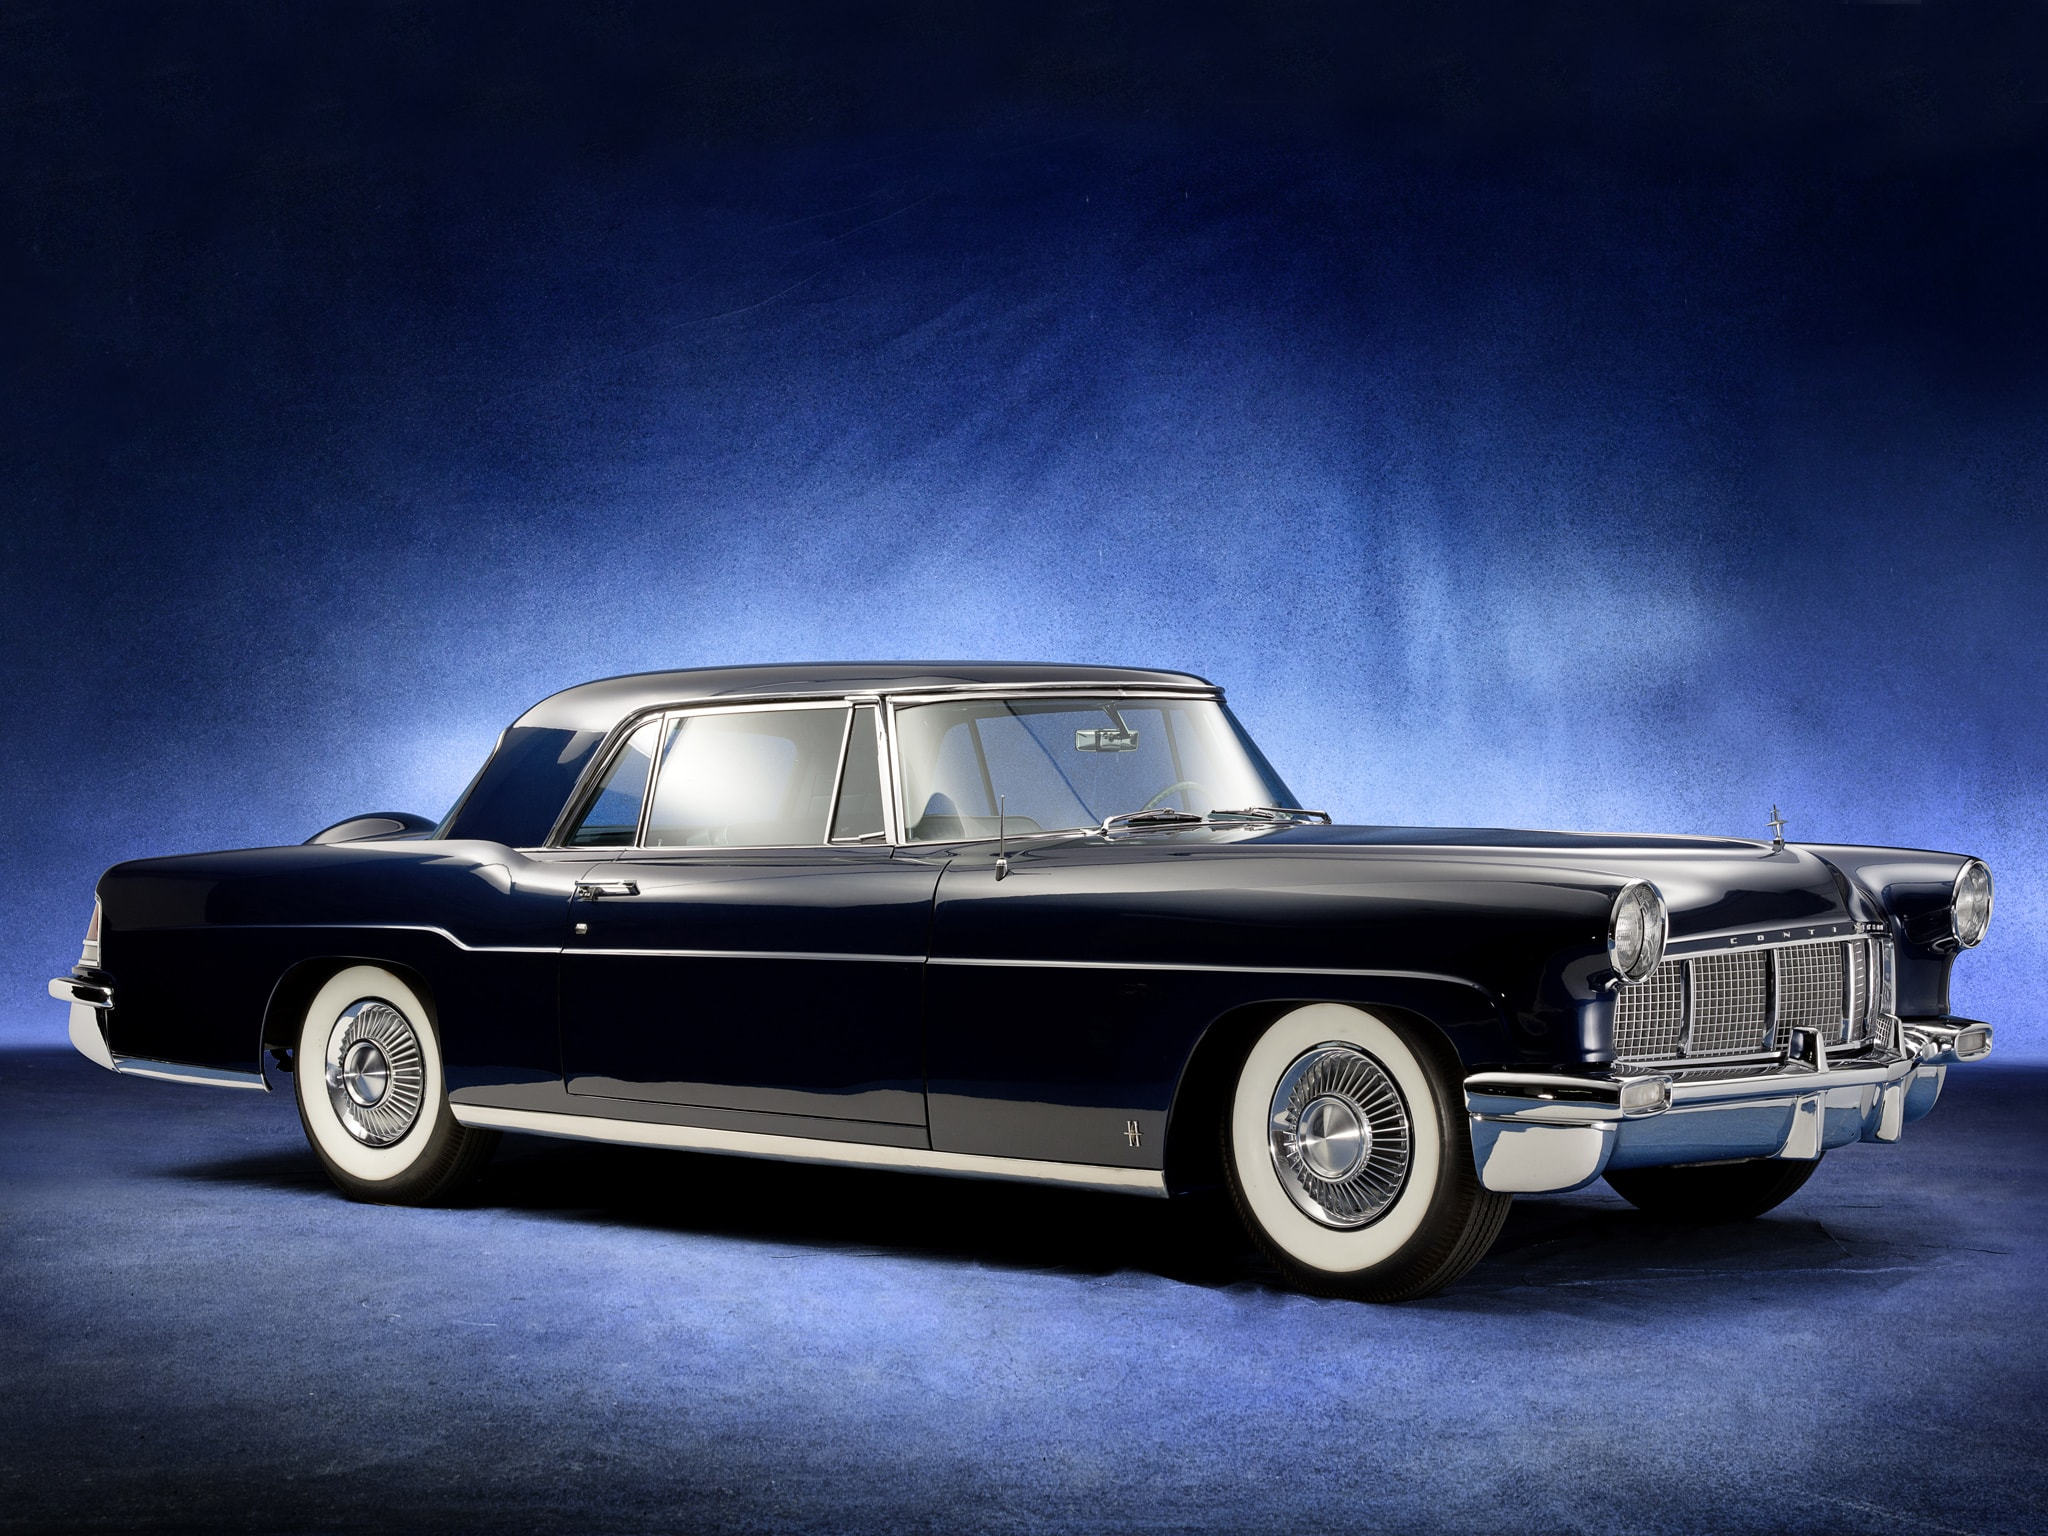 1956 Lincoln Mark II Screensavers